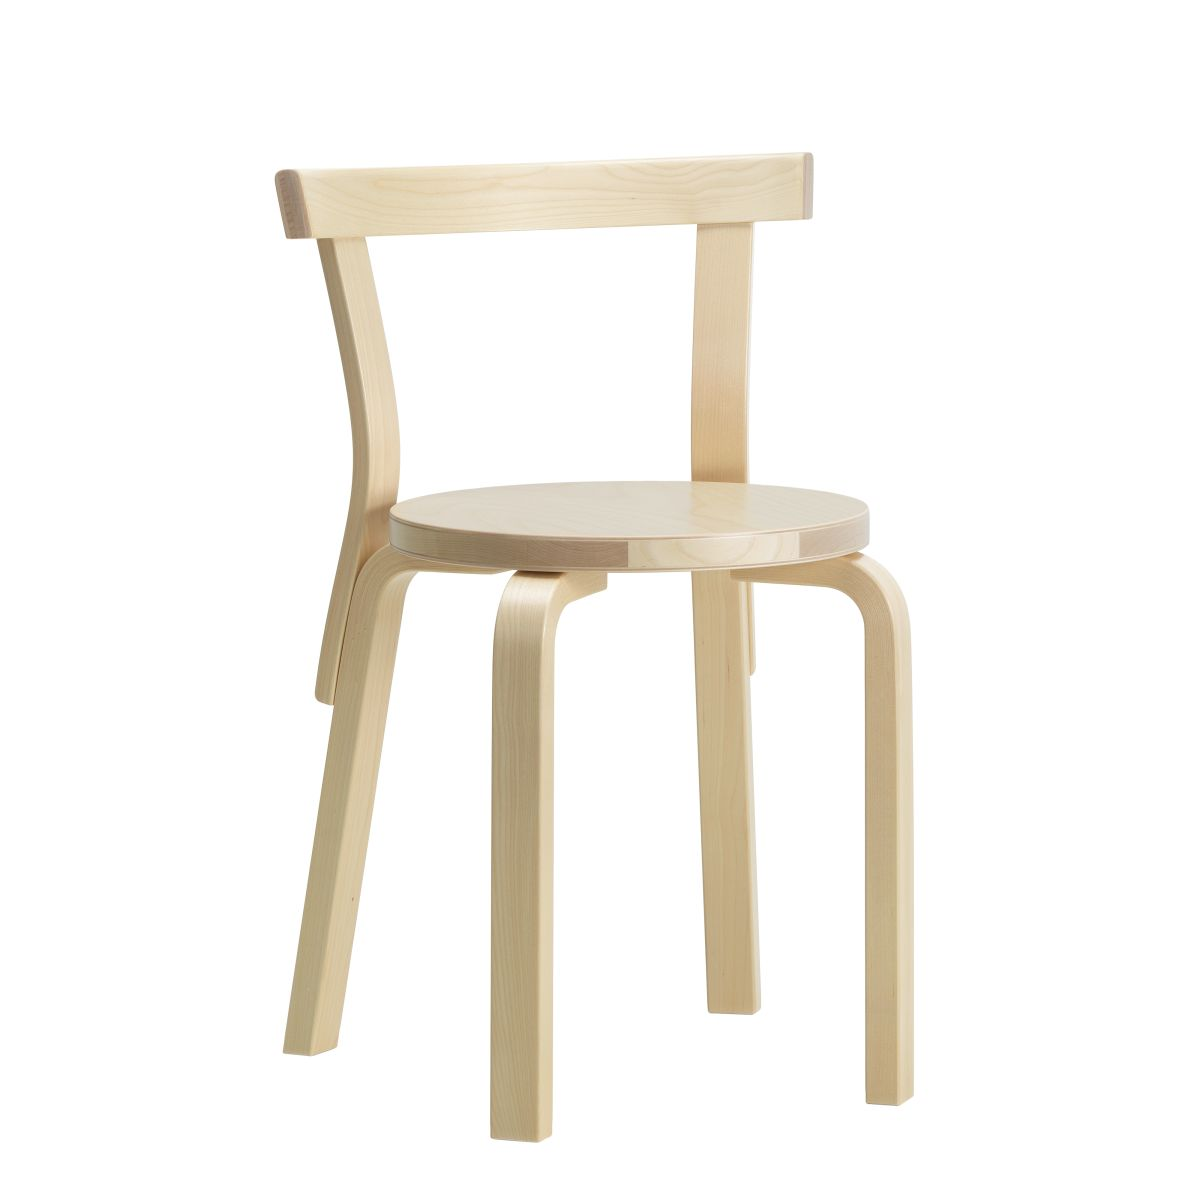 Chair-68-birch-natural-lacquered_F-2868271